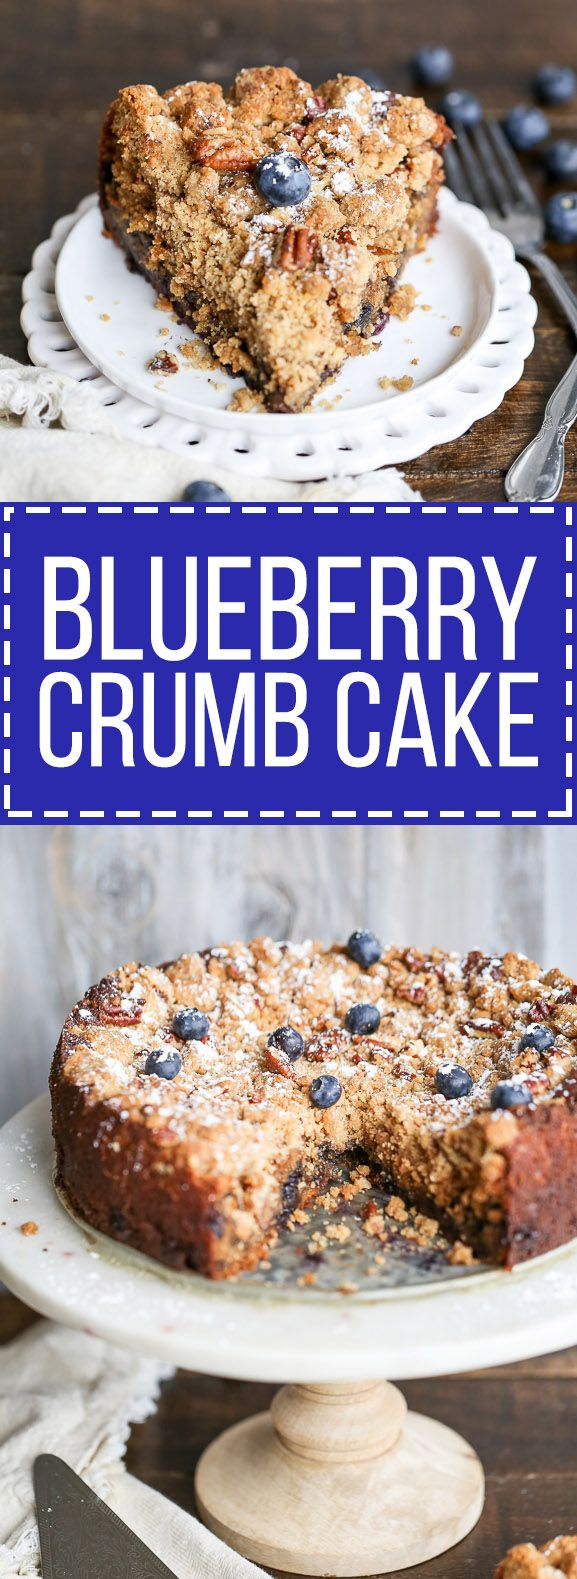 ... of pecan crumble atop a flavorful cake bursting with fresh blueberries